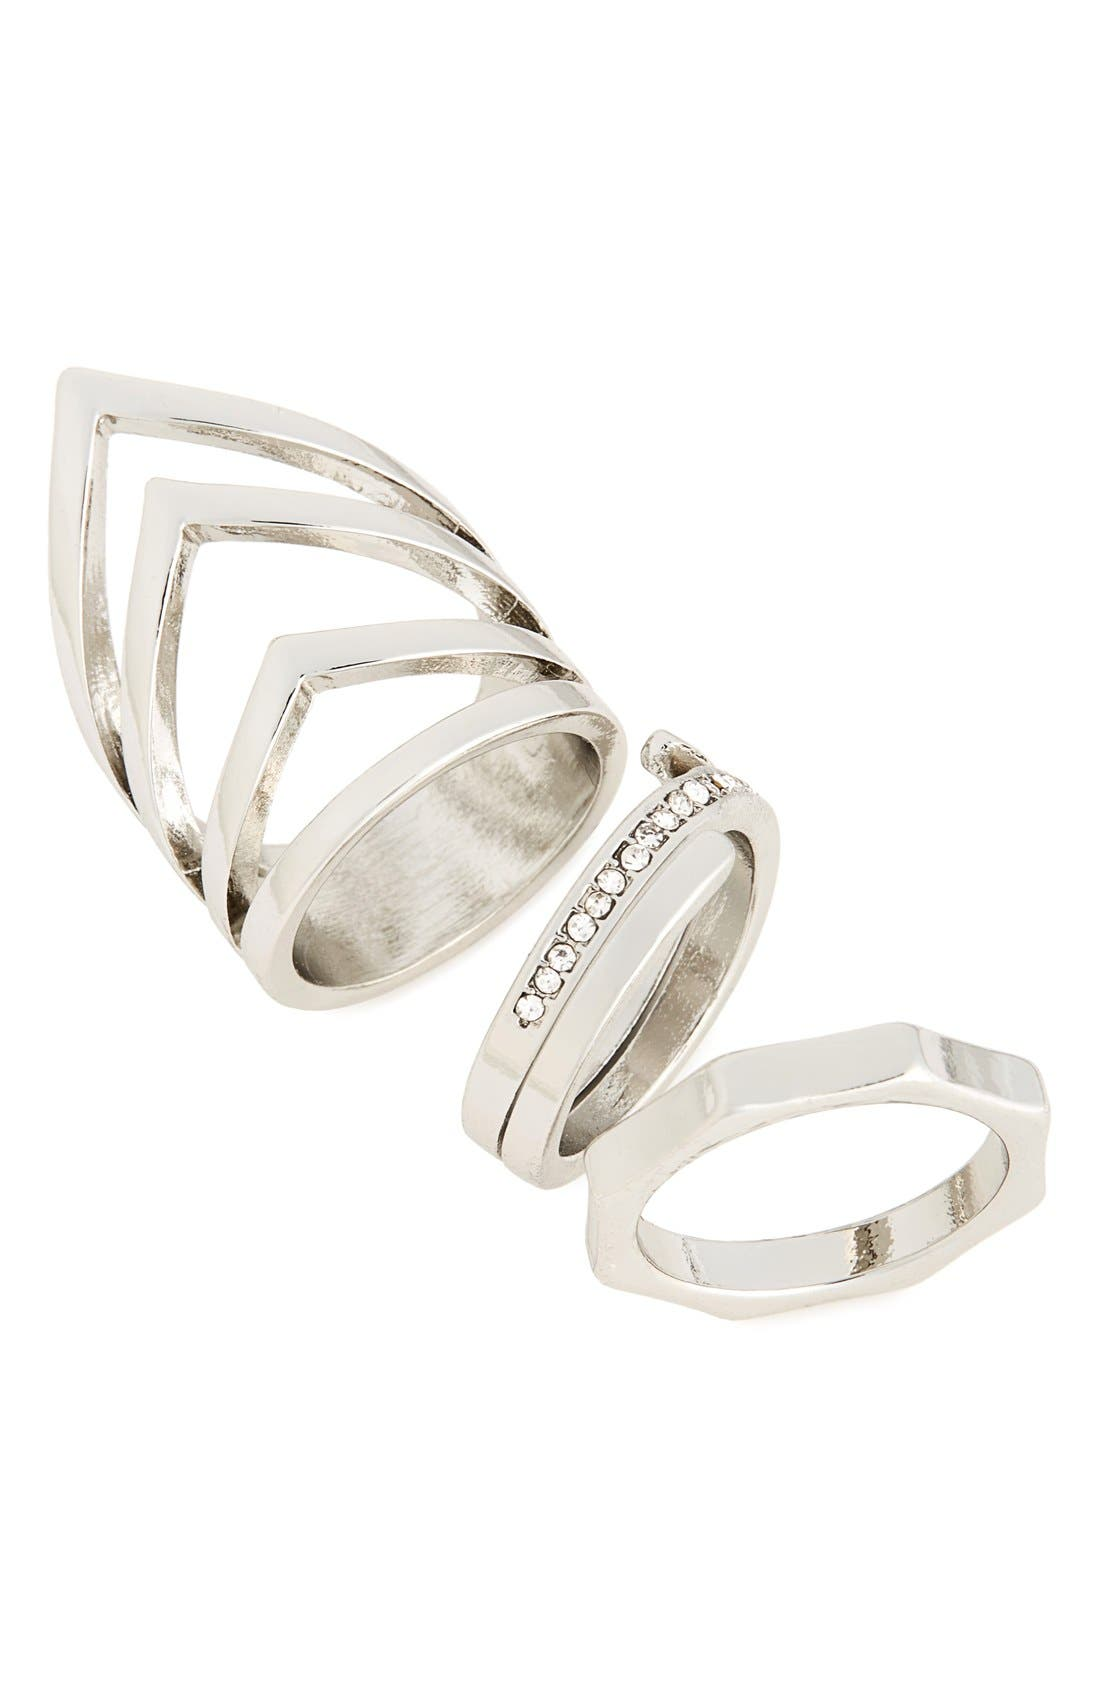 Main Image - Topshop Set of 3 Rings